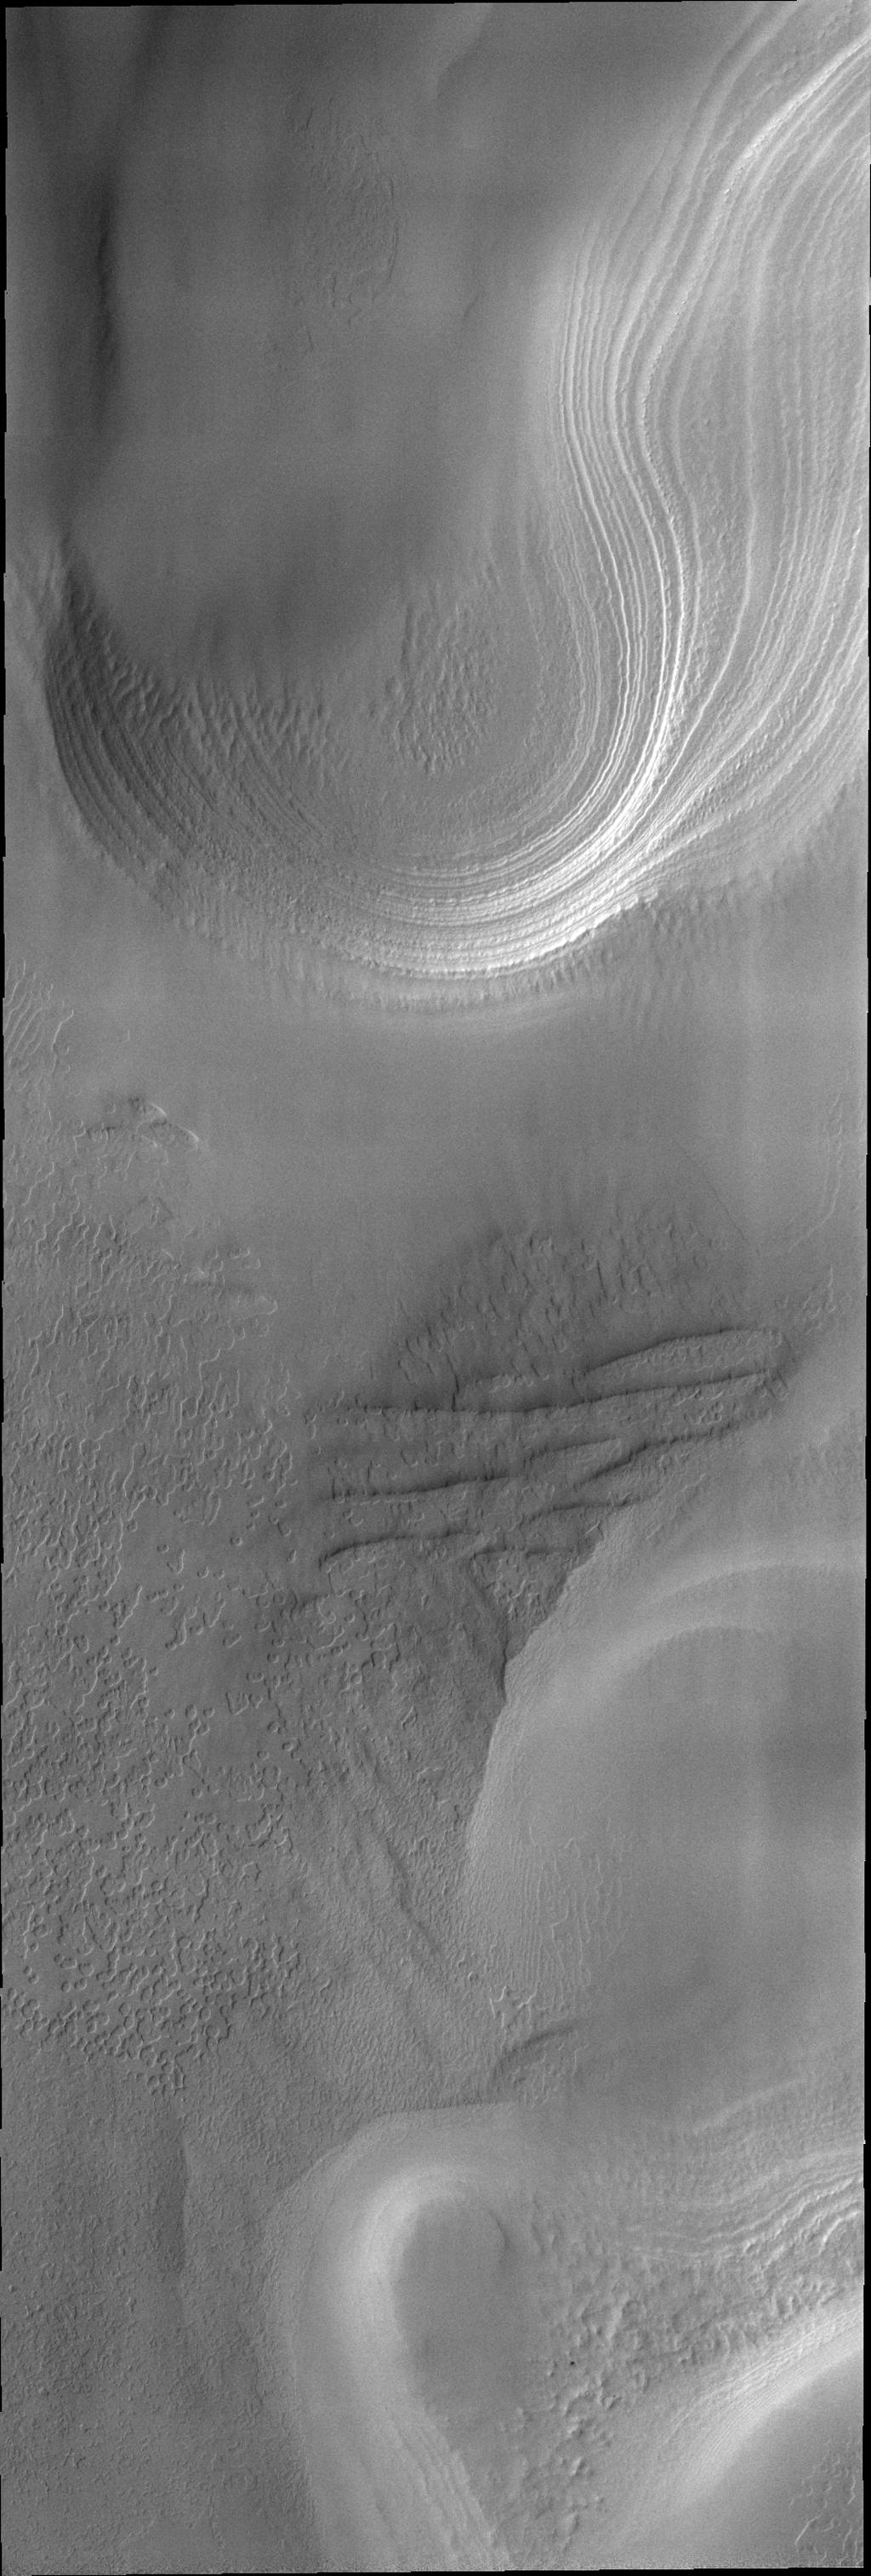 This image captured by NASA's Mars Odyssey shows layering in the south polar cap.